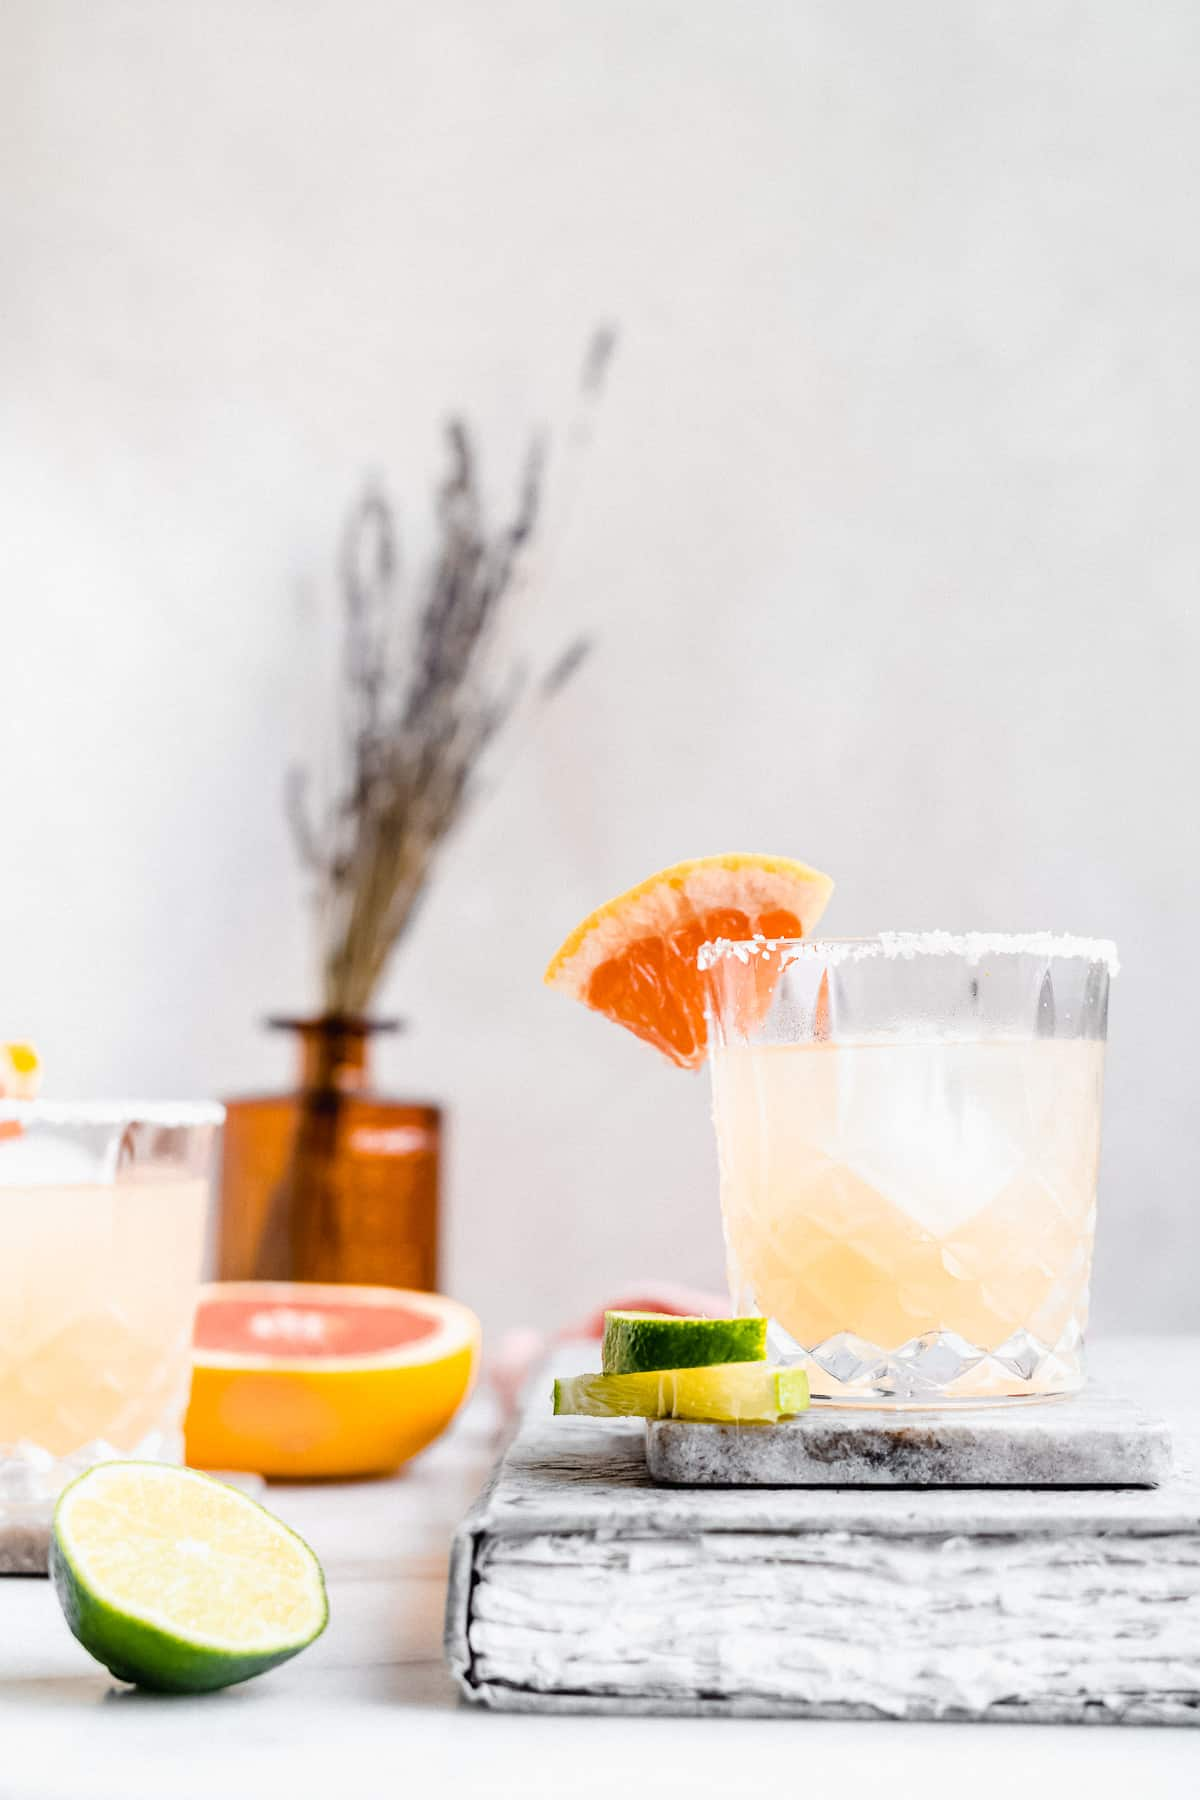 Side view photo of the Skinny Smoky Grapefruit Margarita served in a crystal glass that is sitting on a coaster on top of a book.  Half a grapefruit and a slice of lime are seen in the background.